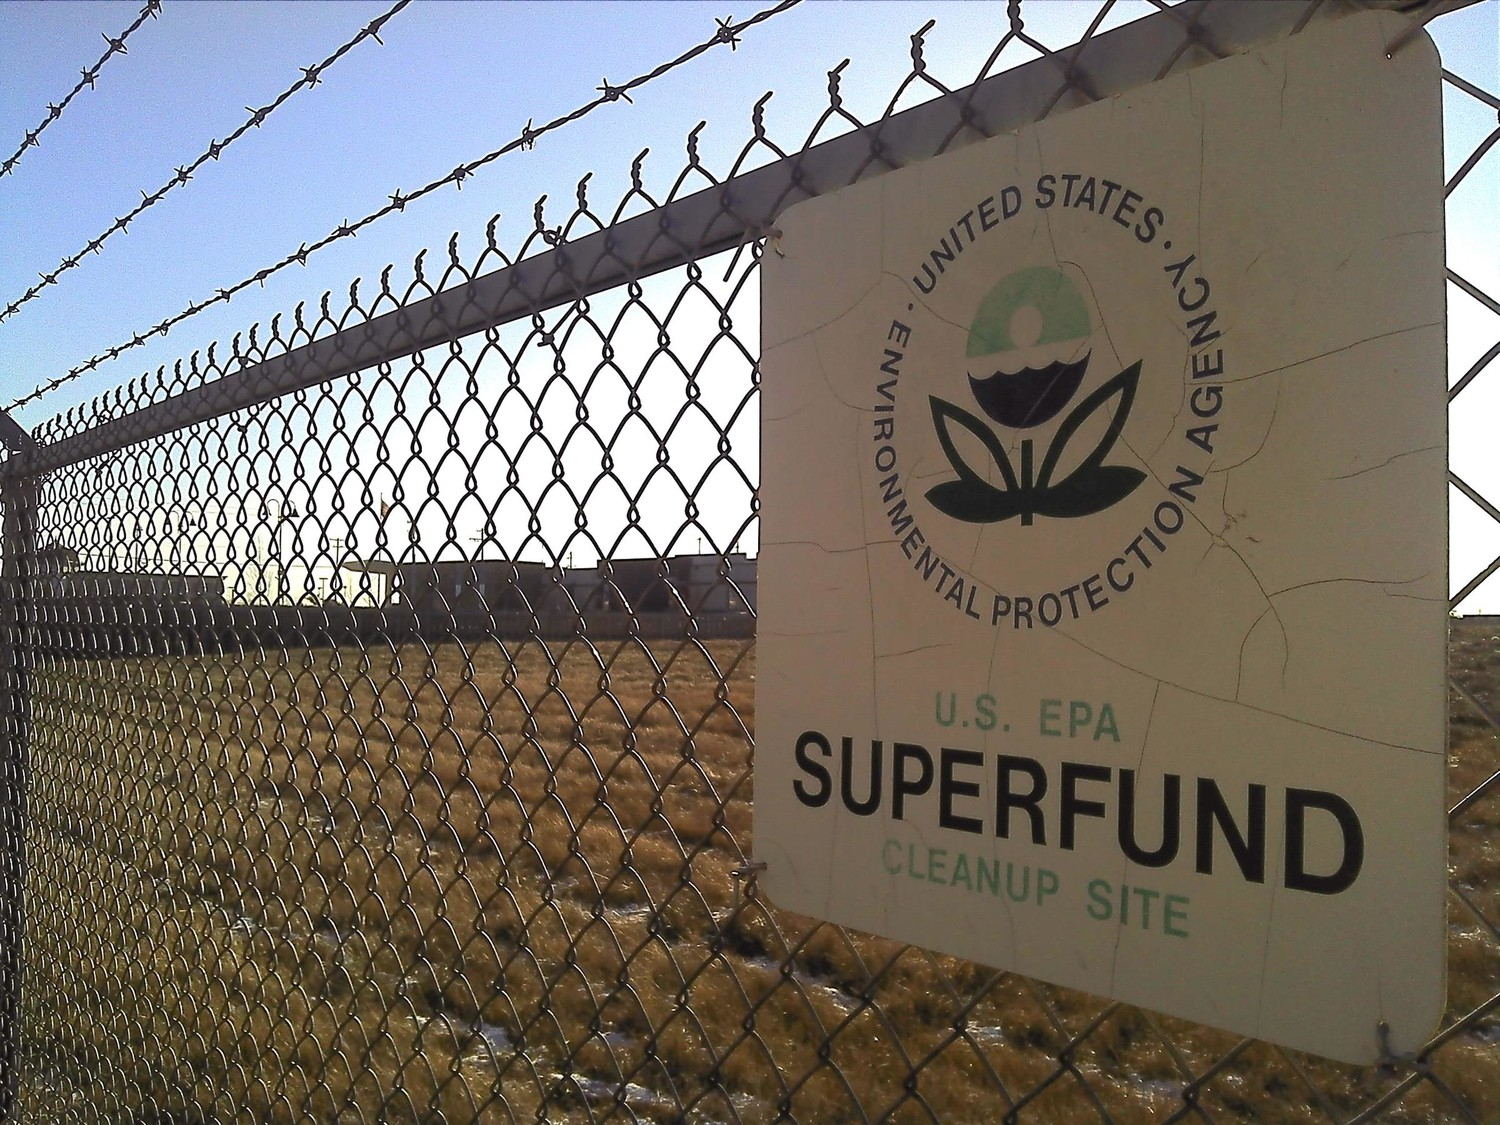 Superfund sites can take years to clean up and cost millions. Even after remediation, questions of safety remain.